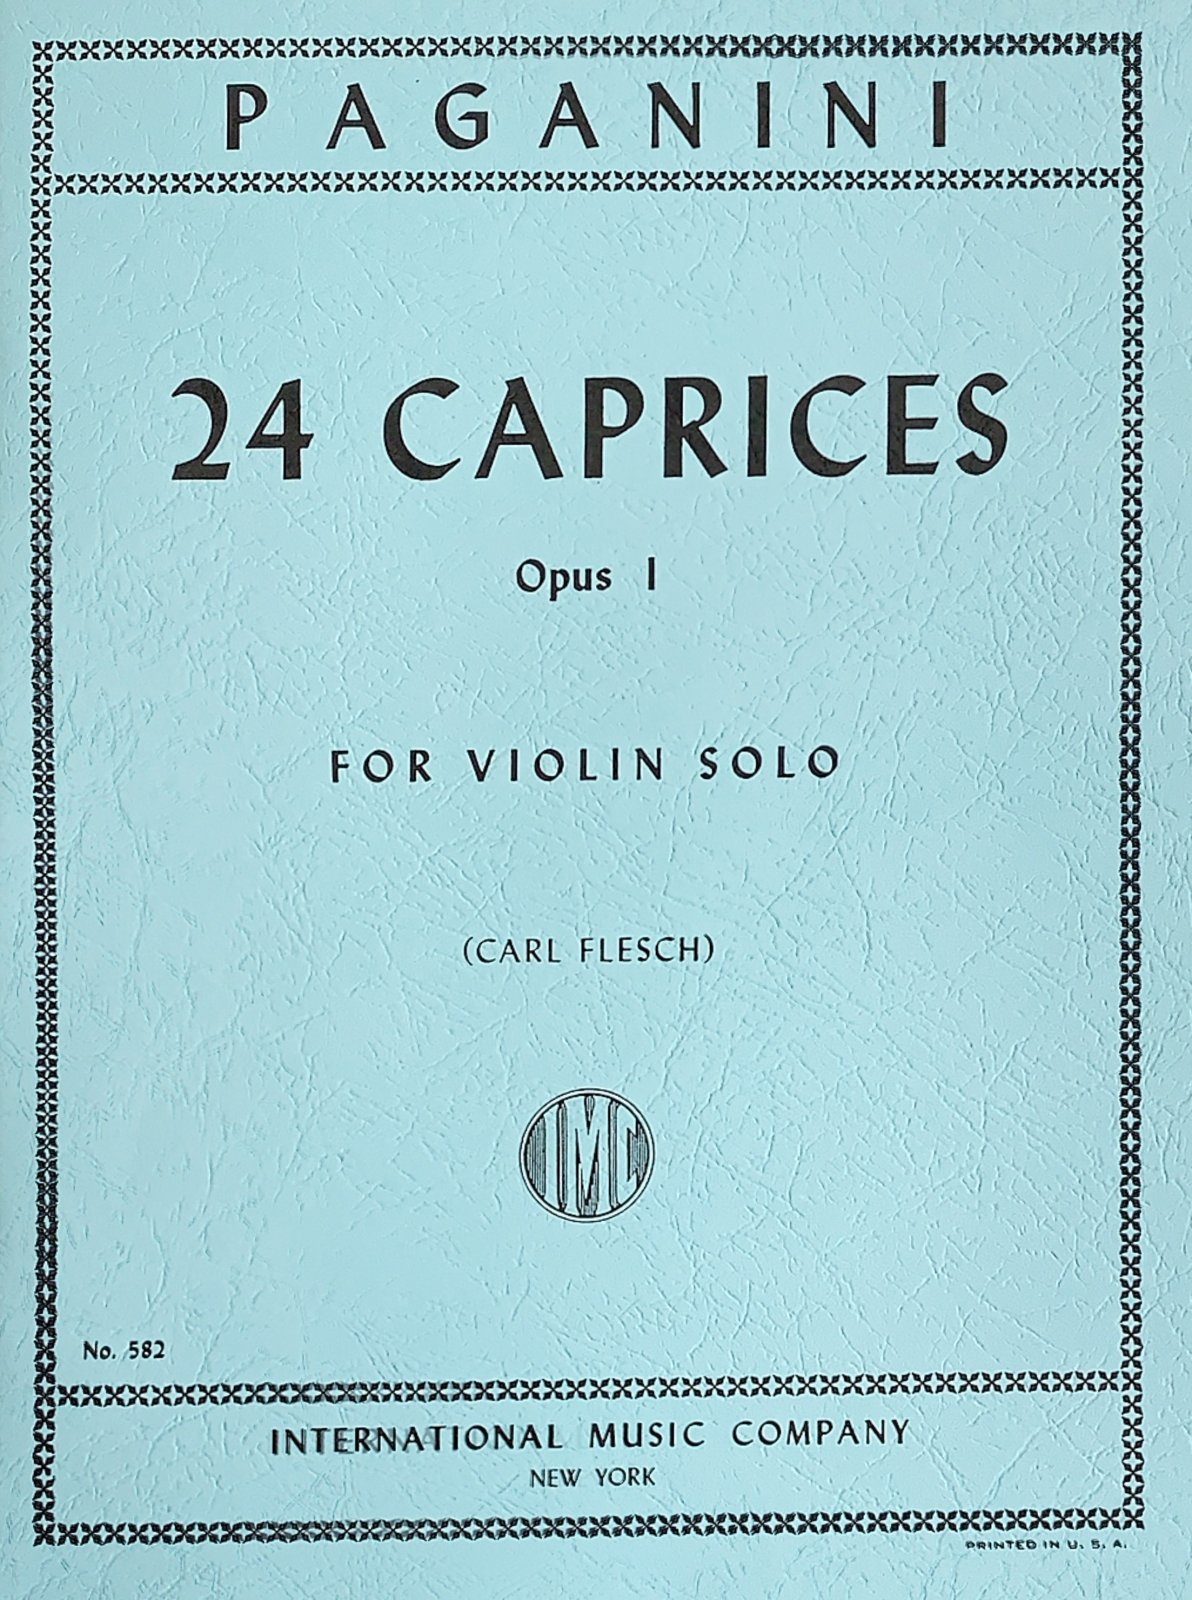 24 Caprices Op 1 - Paganini - Violin - Flesch - International